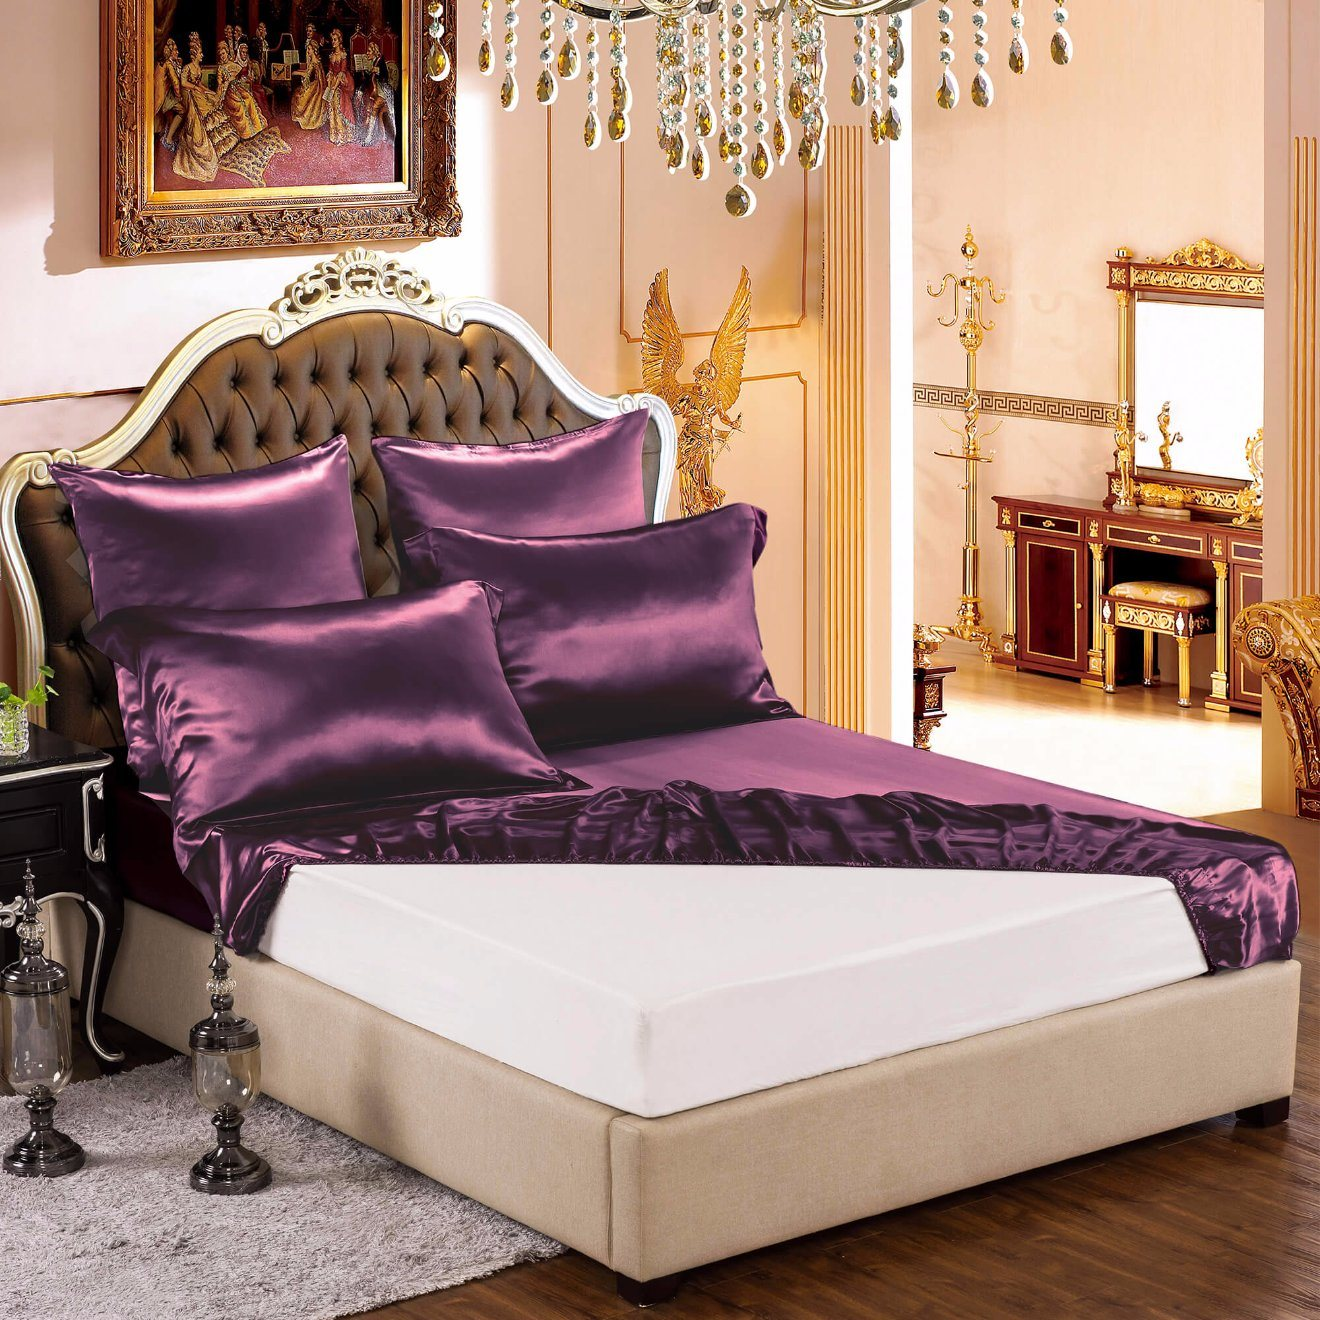 covered season comforter none bedding sharing buttons shell with addthis bed silk all